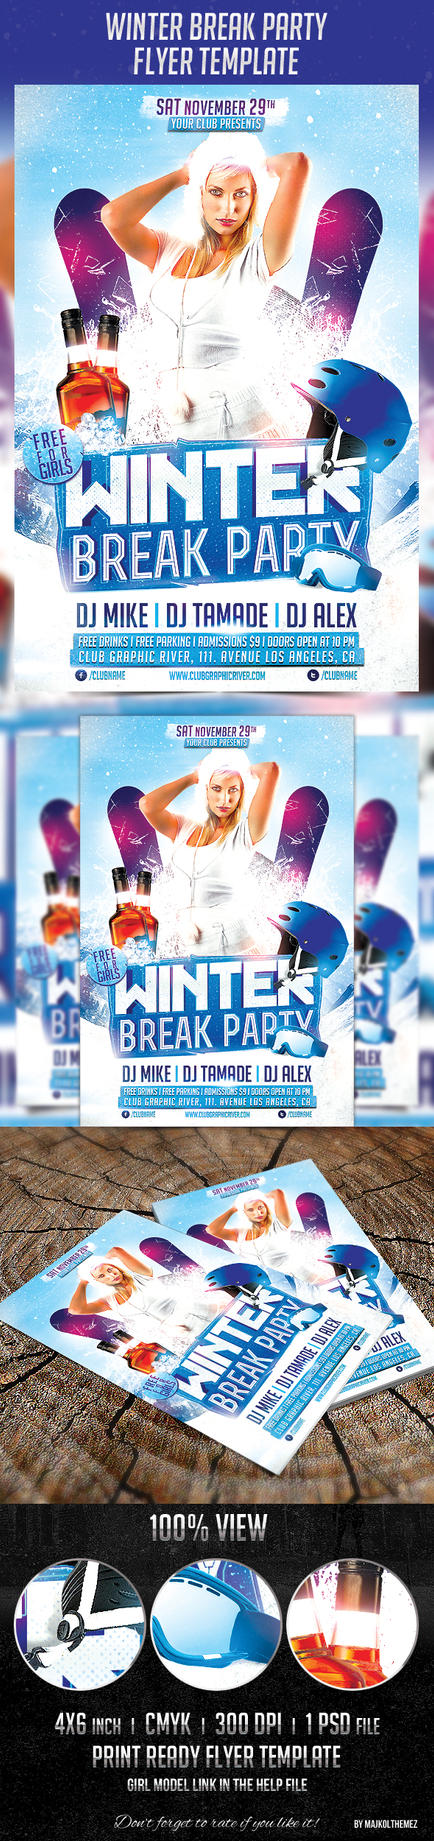 Winter Break Party Flyer Template by majkolthemez